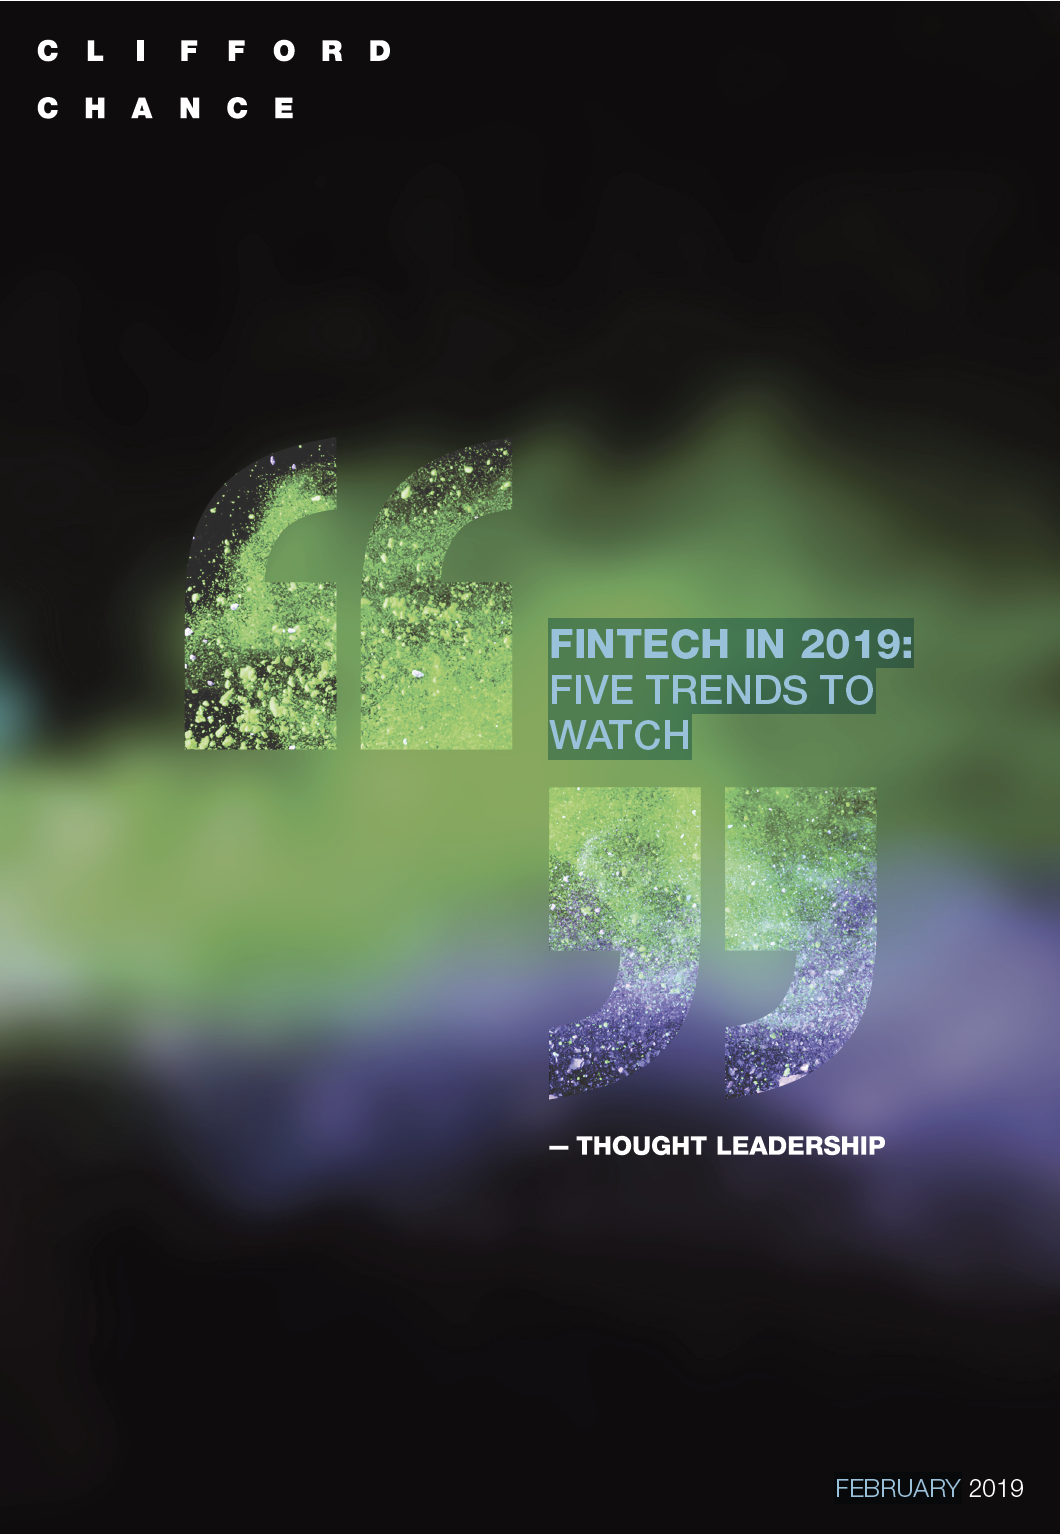 Fintech in 2019 – Five trends to watch